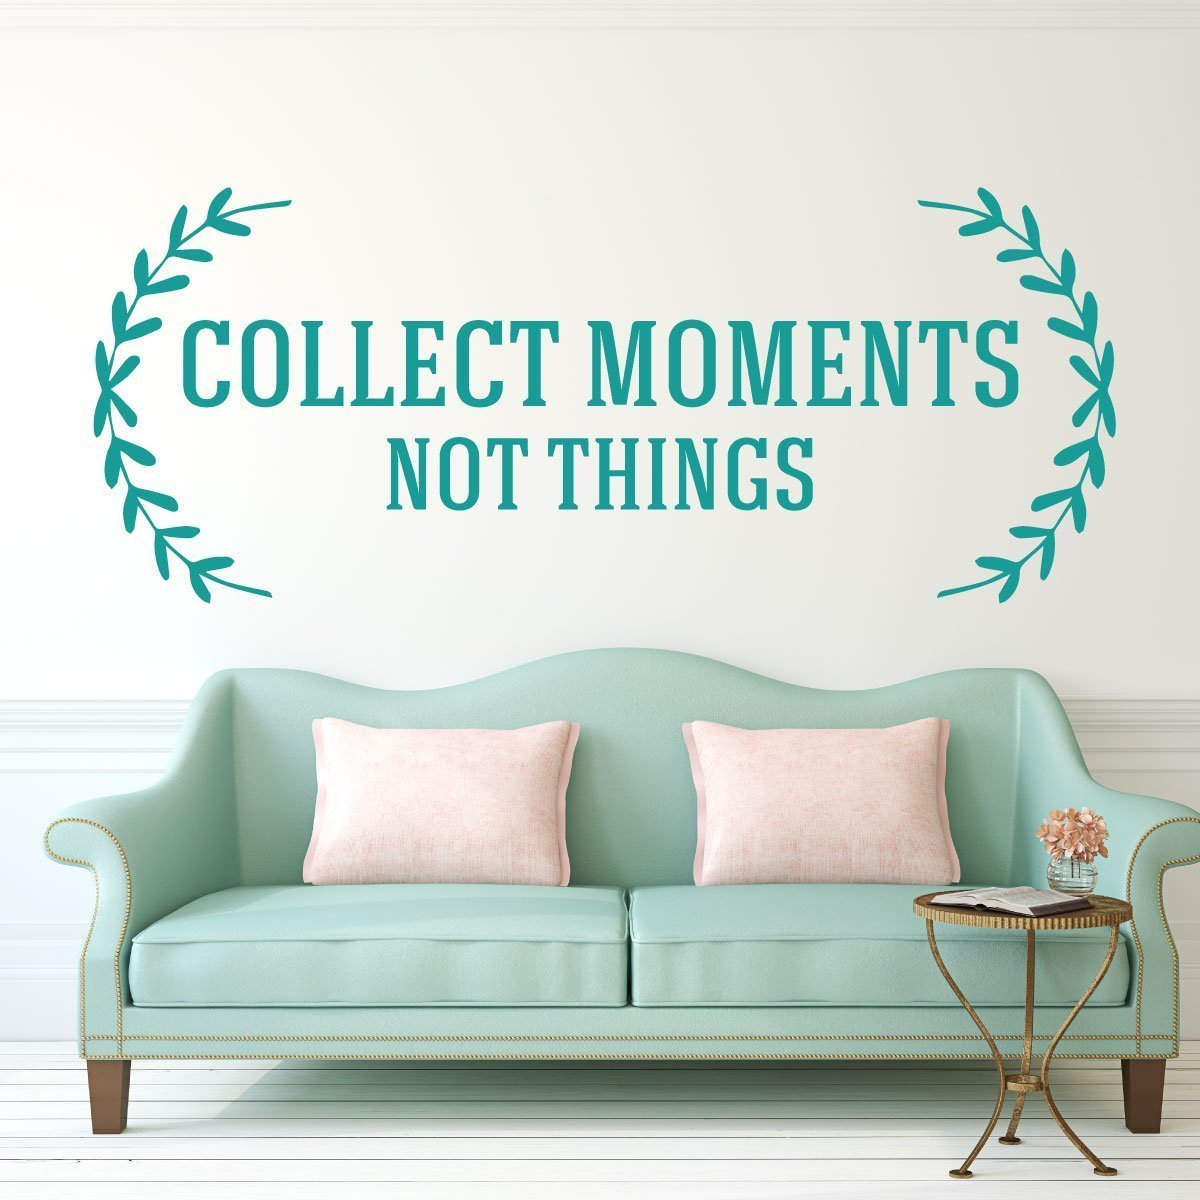 Inspirational Quotes -Collect Moments Not Things